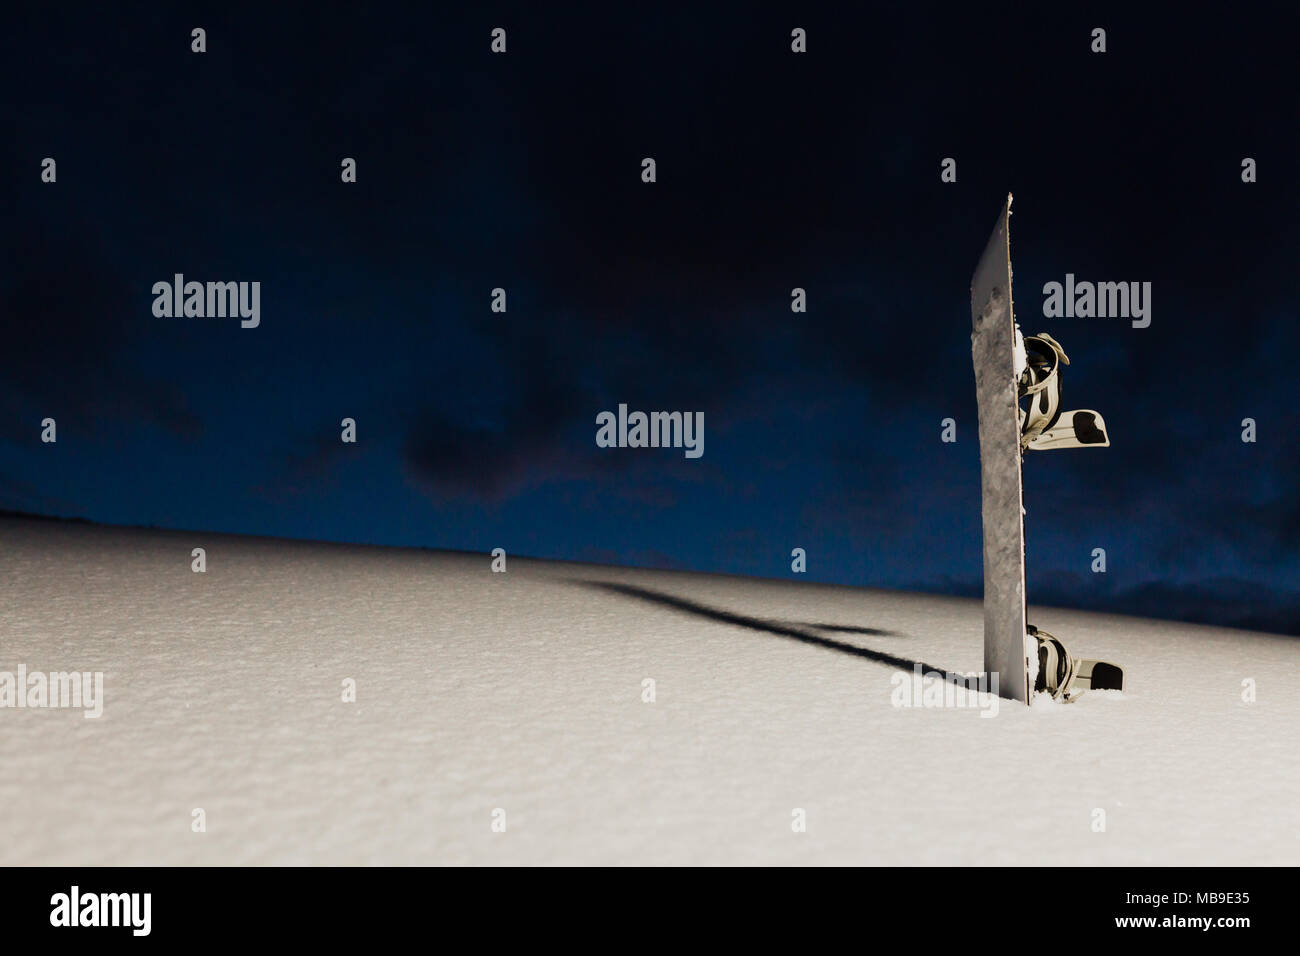 Powder texture and snowboard at sunset - Stock Image